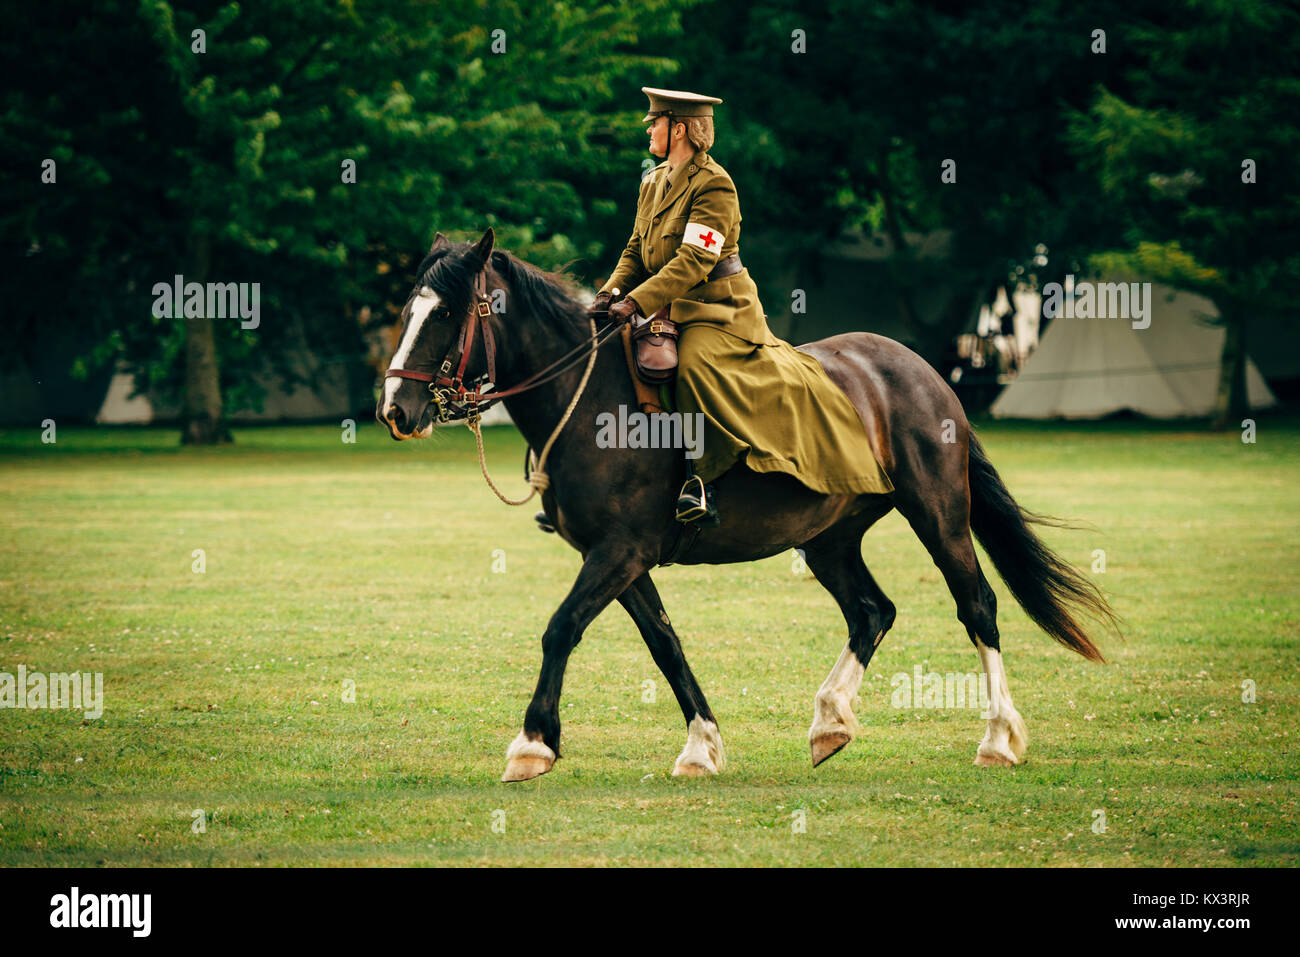 WWII combat medic riding a horse - Stock Image